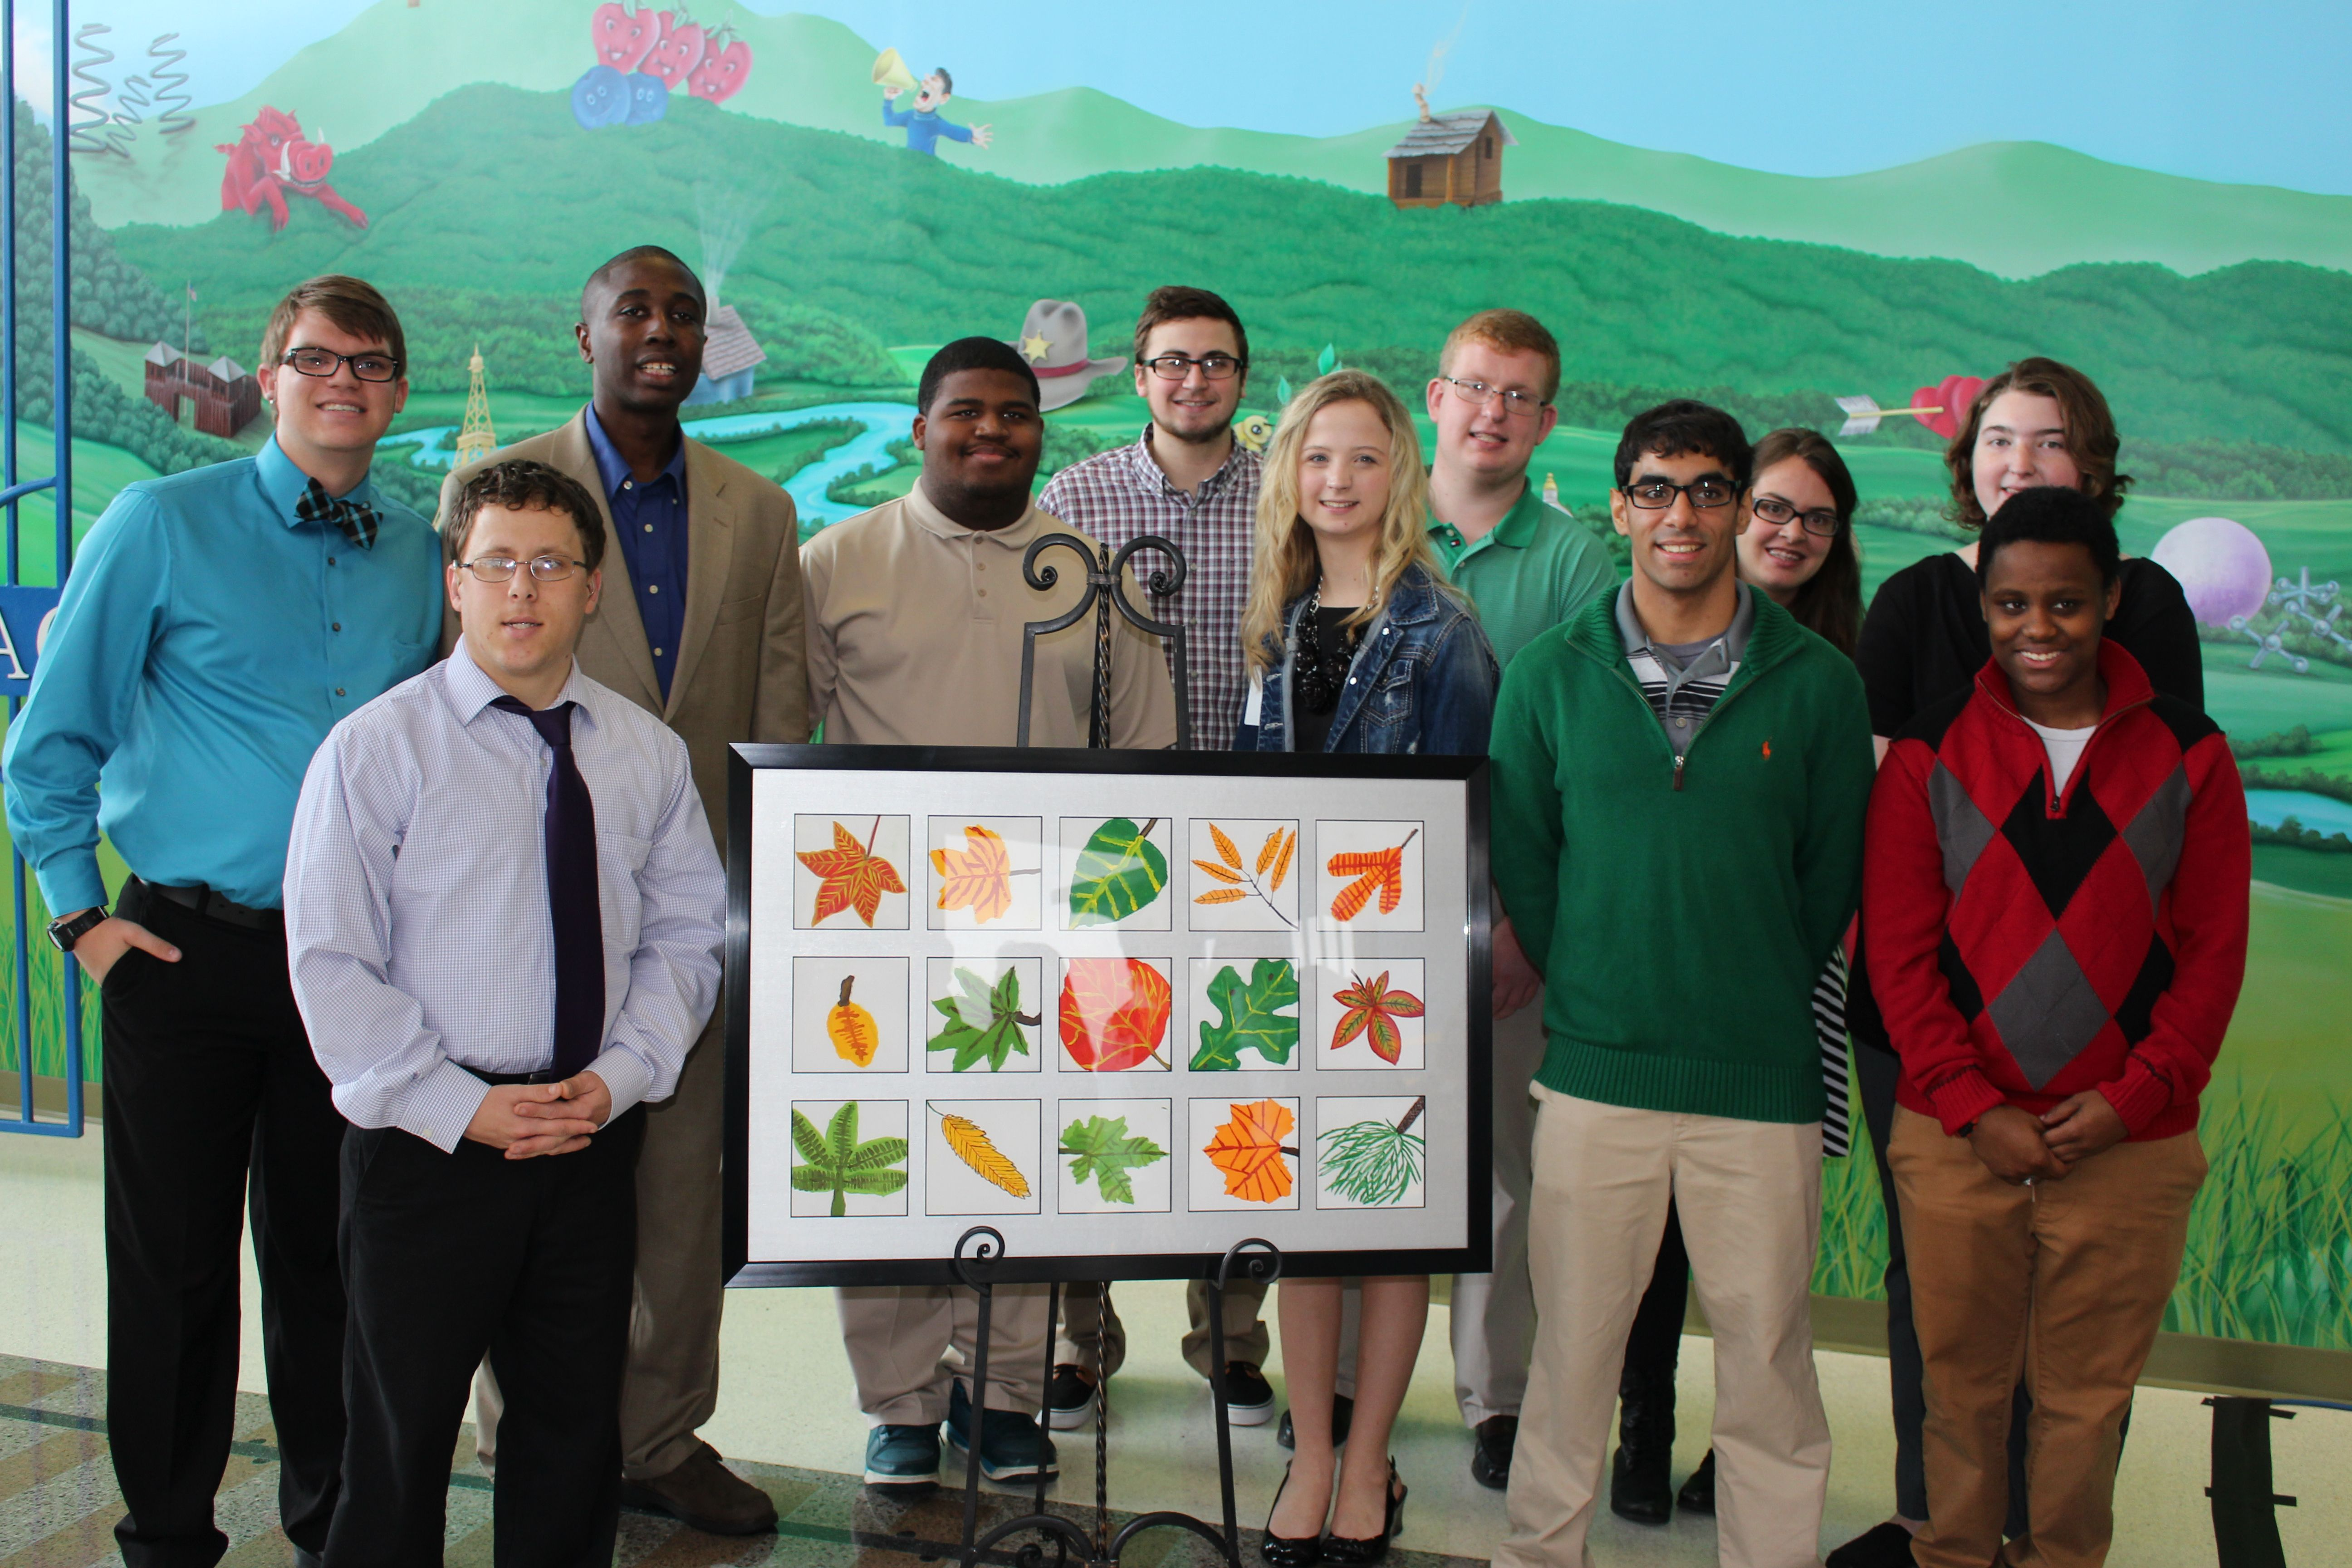 To say thank you for their experience at ACH, Project SEARCH interns worked with our Child Life artists in residence to create a collaborative artwork to be displayed in the hospital to commemorate the first year of the ACH Project SEARCH program! Learn more here: http://projectsearcharkansas.org/.